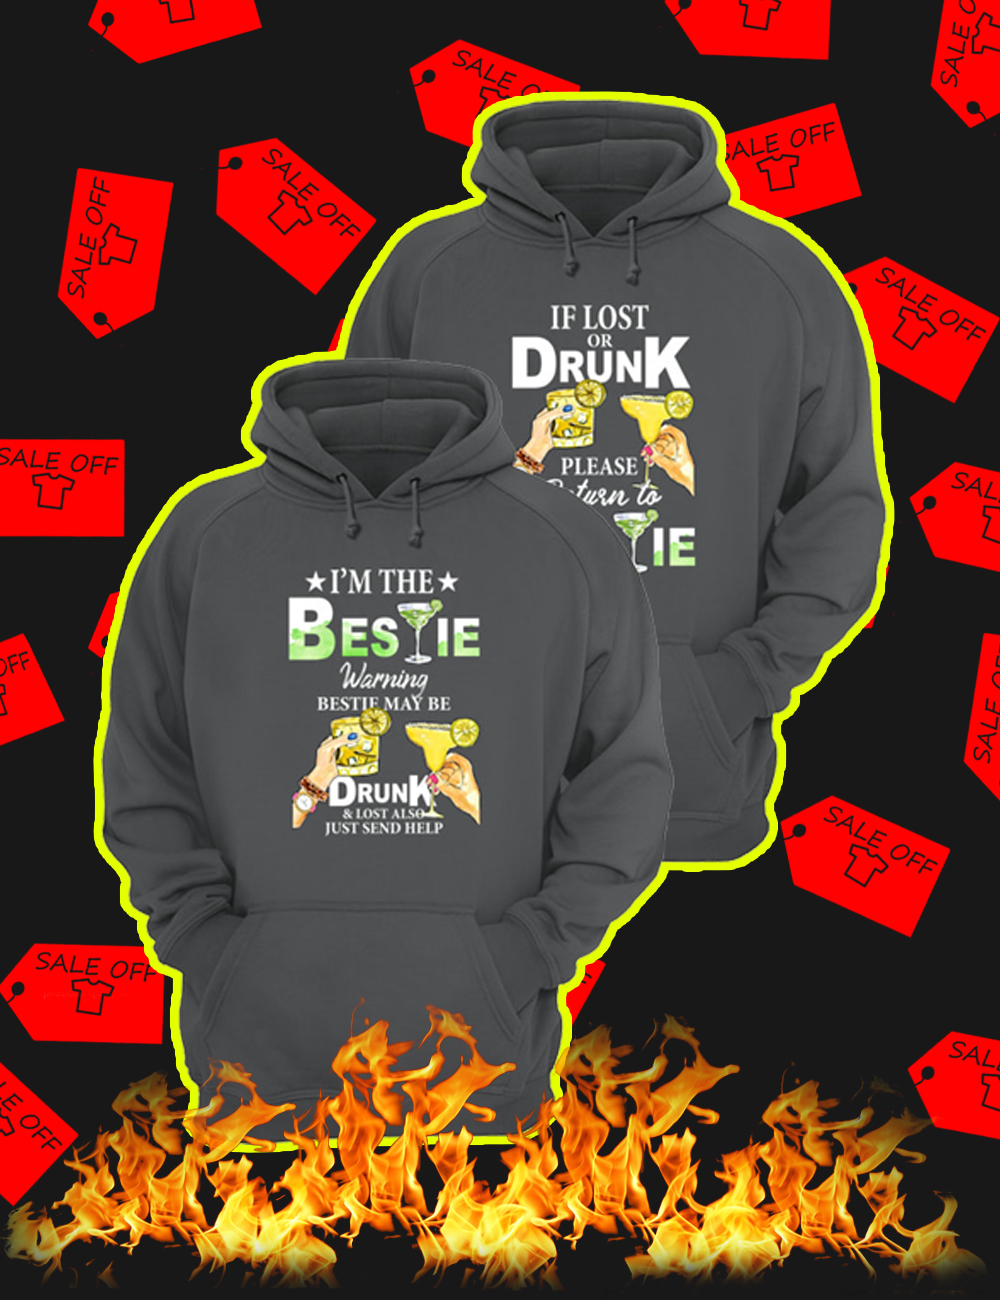 If Lost Or Drunk Please Return To Bestie Hoodie-grey